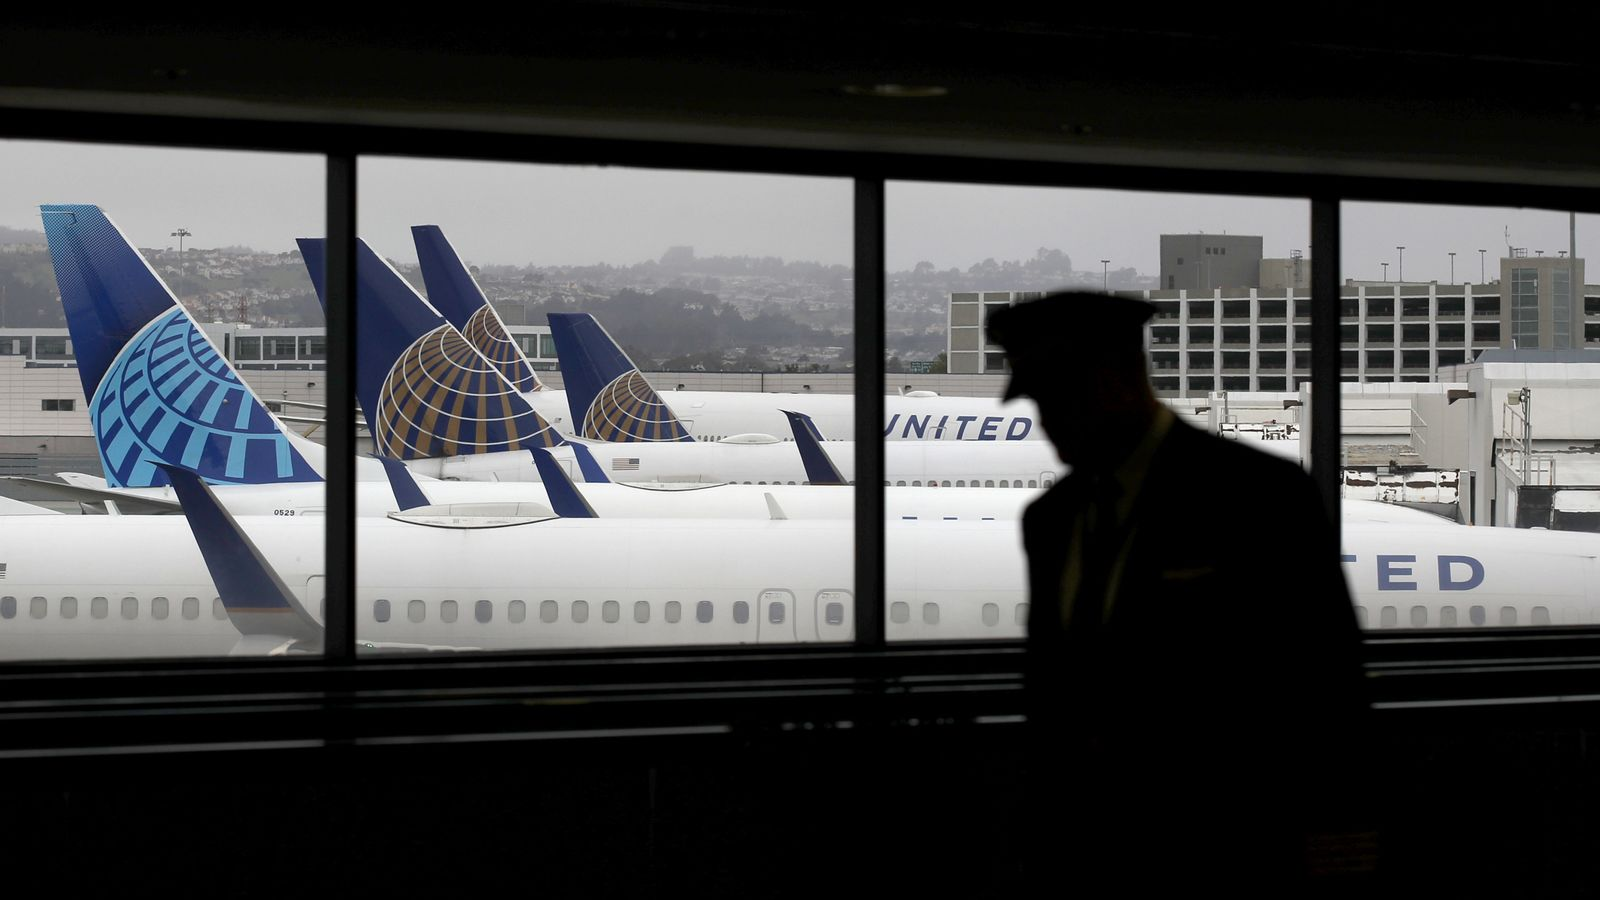 US airlines agree $25bn rescue deal – with strings attached | Business News